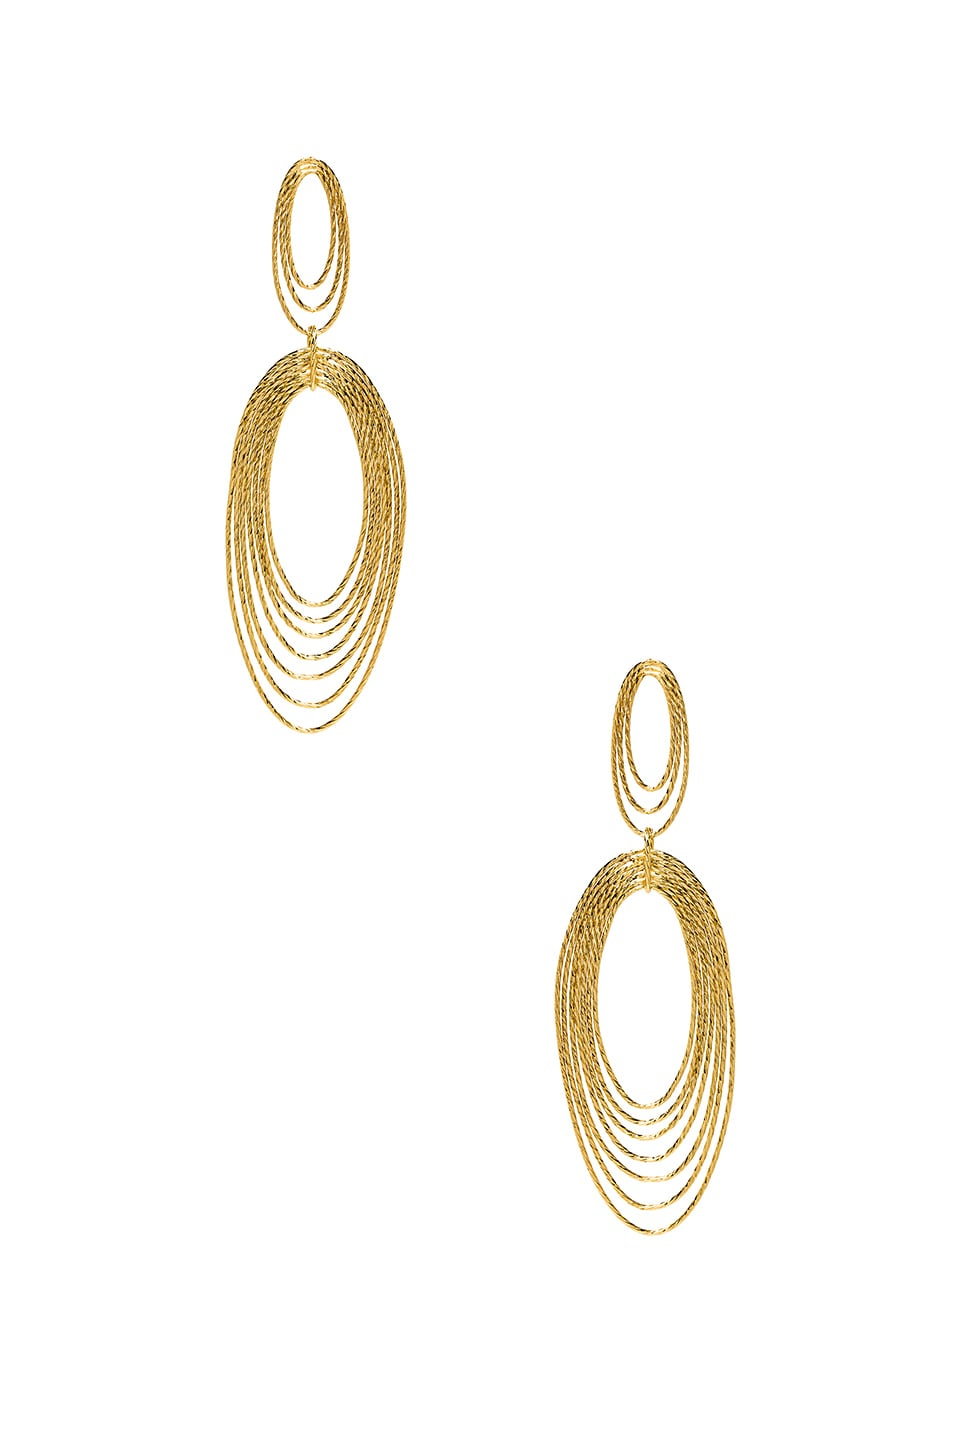 gorjana Presley Statement Drop Earrings in Gold